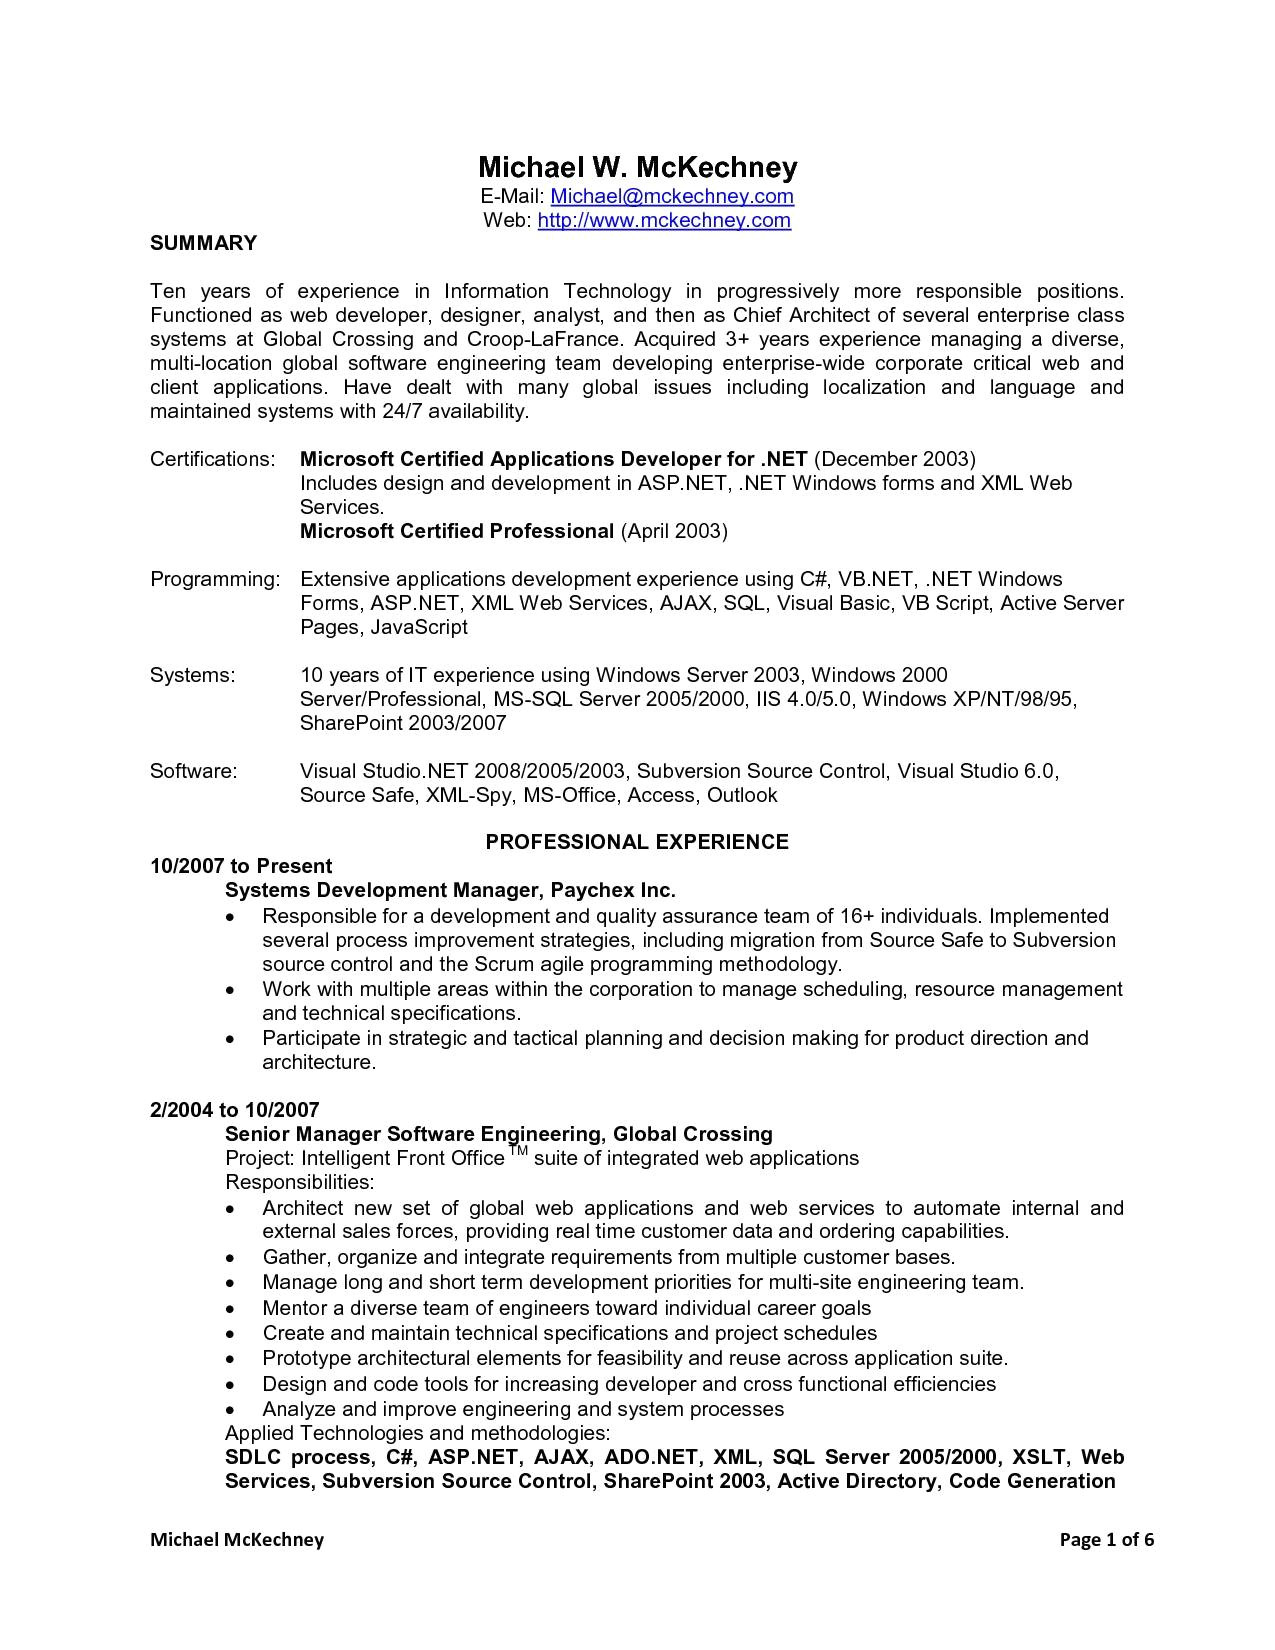 sample resume for software tester 2 years experience best of gallery creawizard all about resume sample